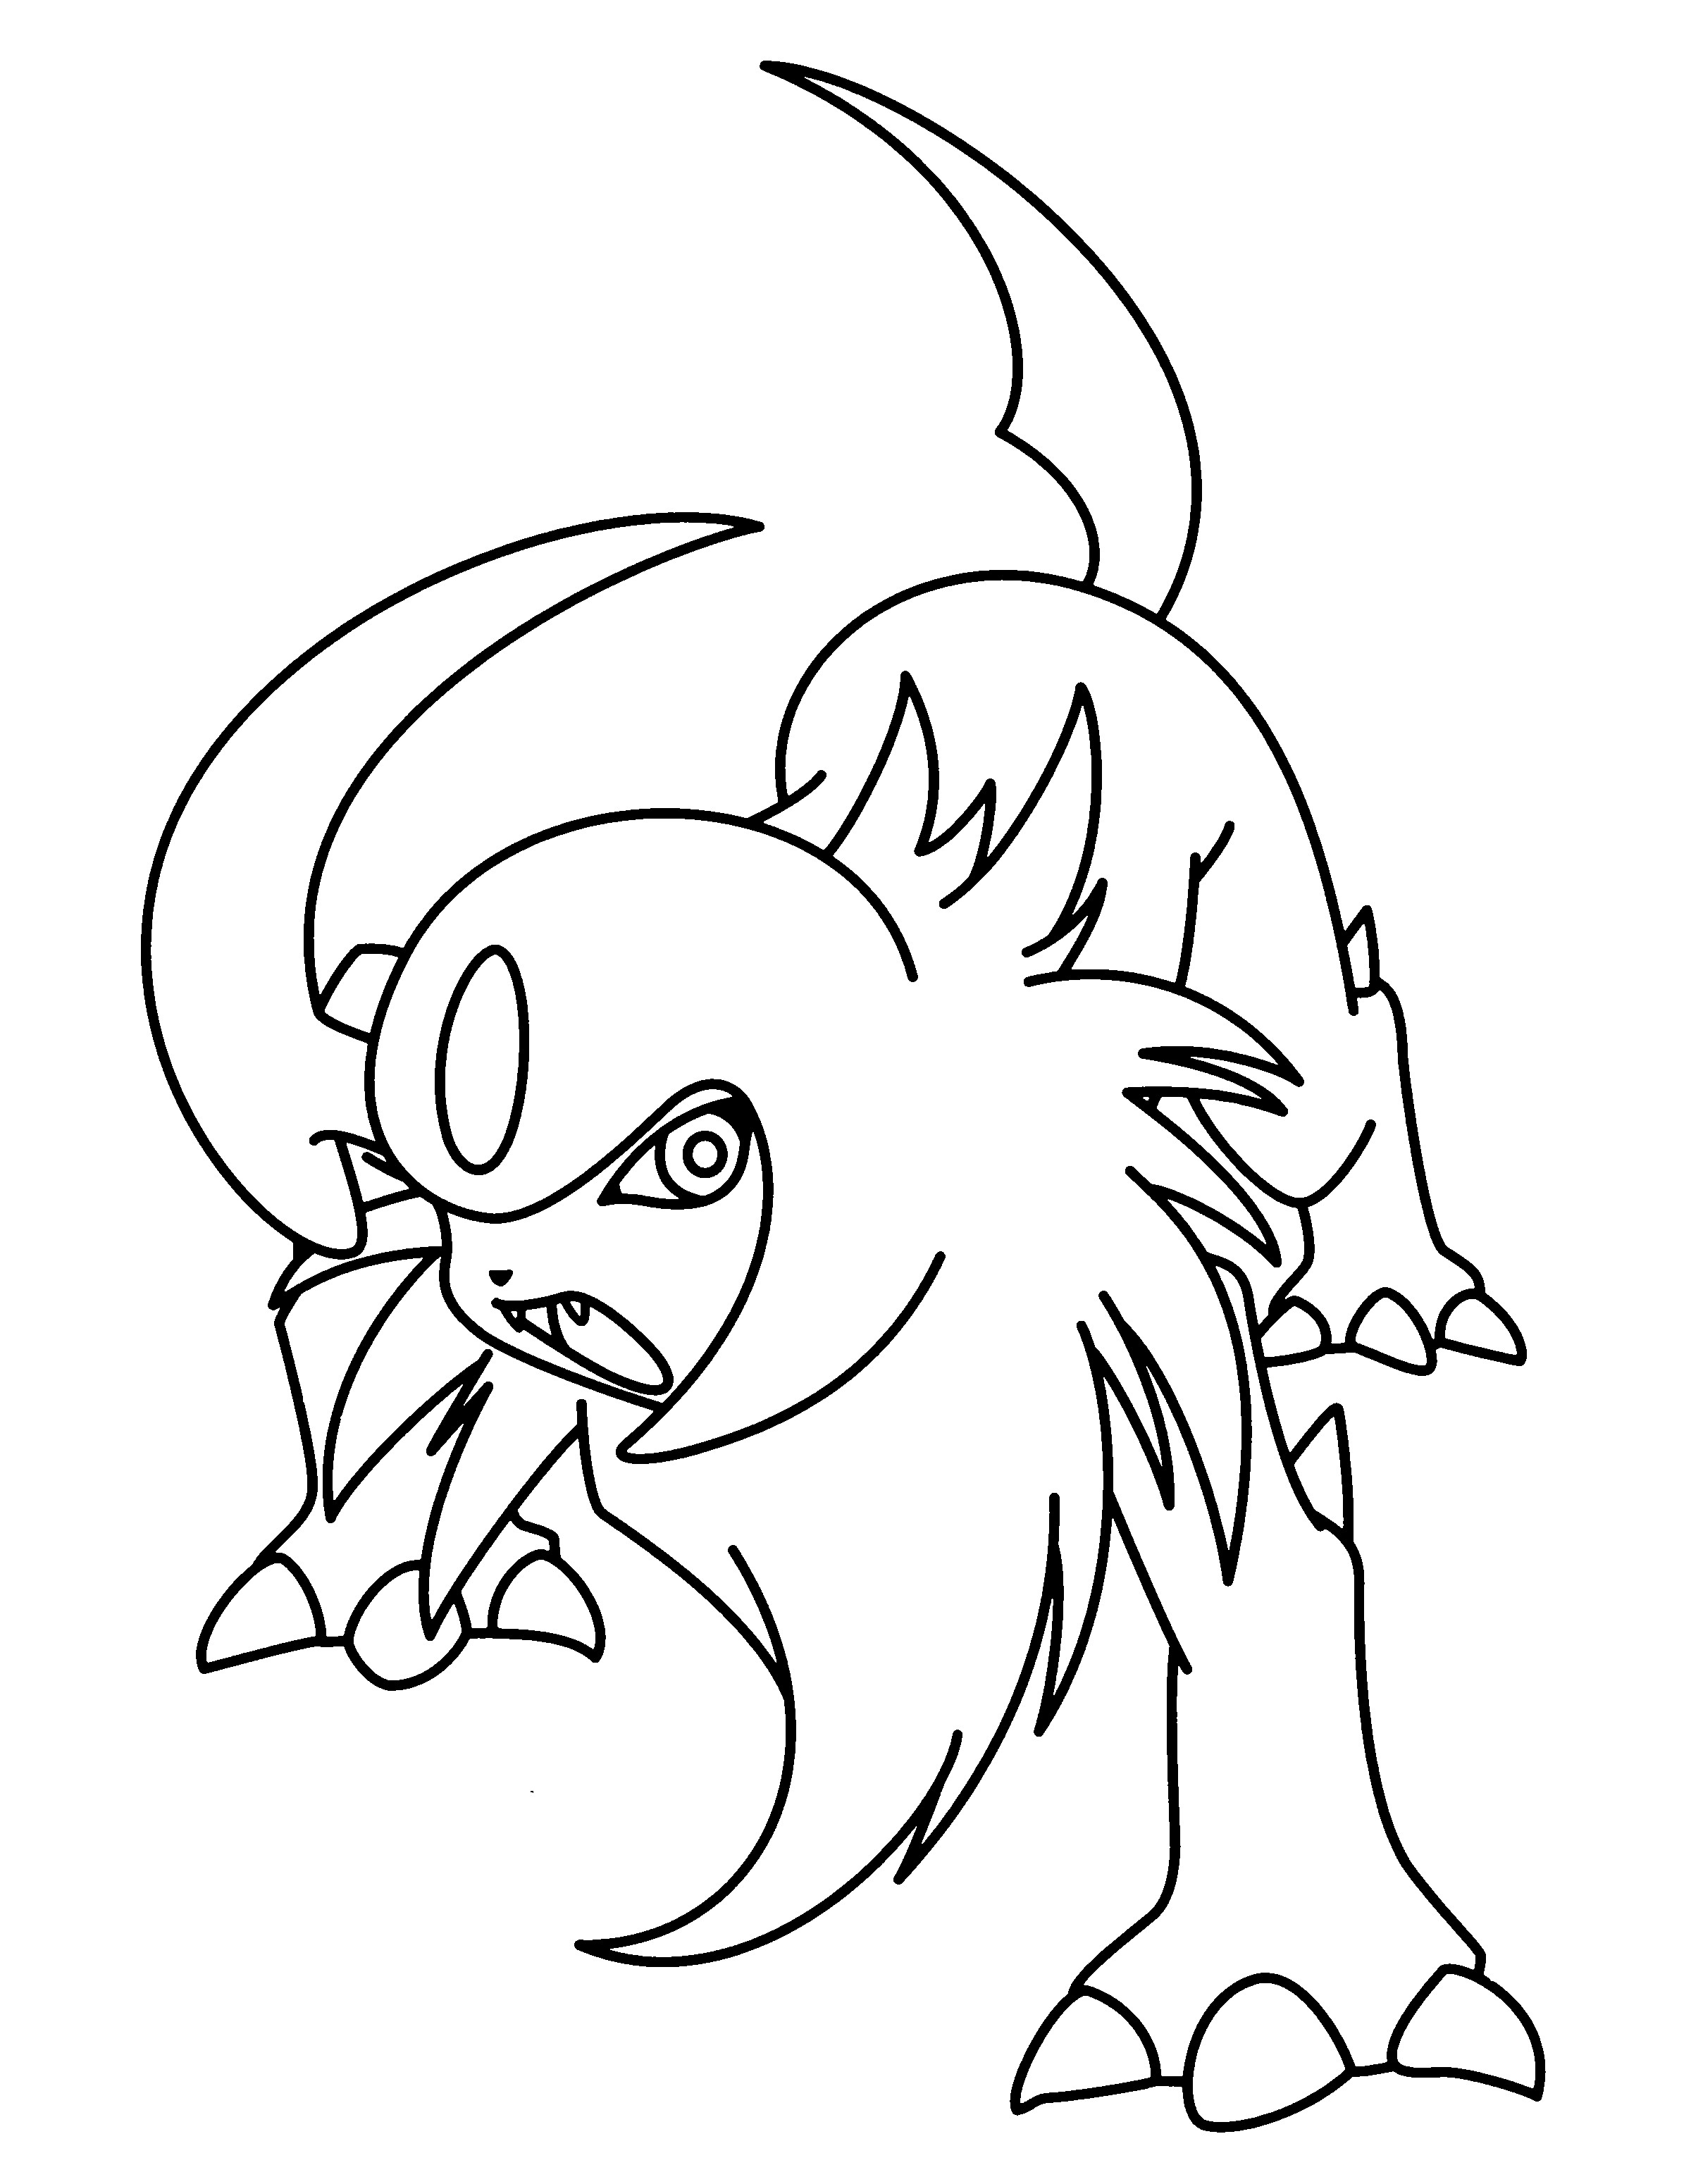 2400x3100 Unique Absol Coloring Page Collection Printable Coloring Sheet